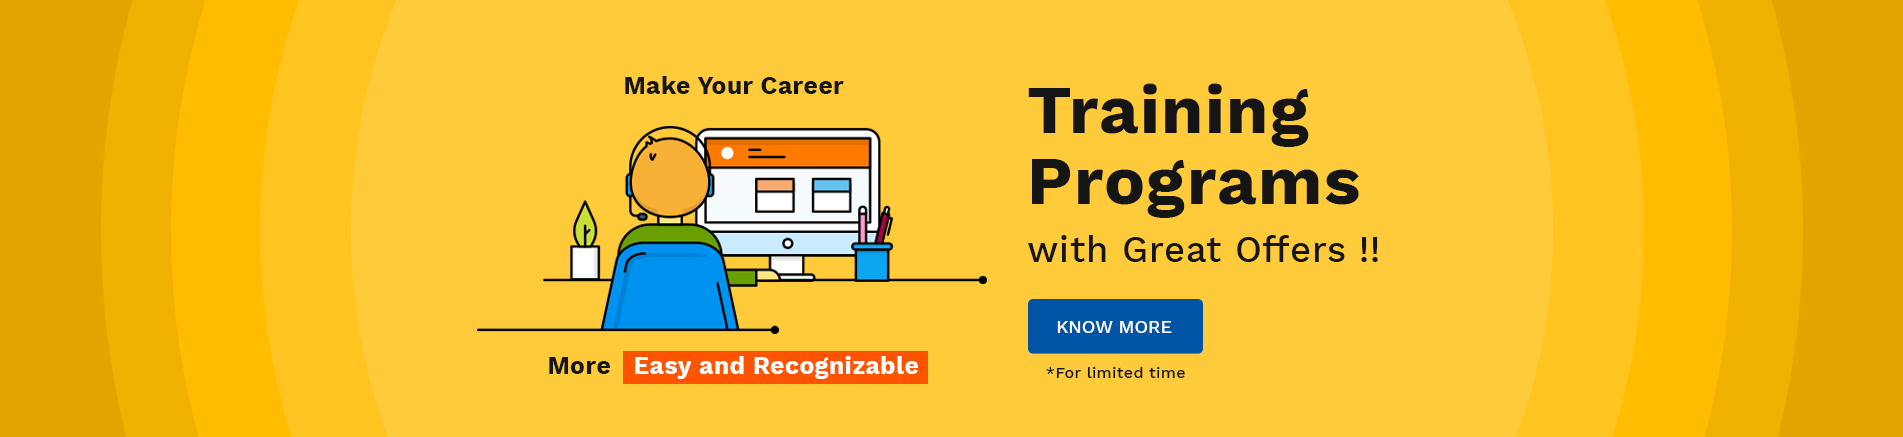 Training Programs with Great Offers